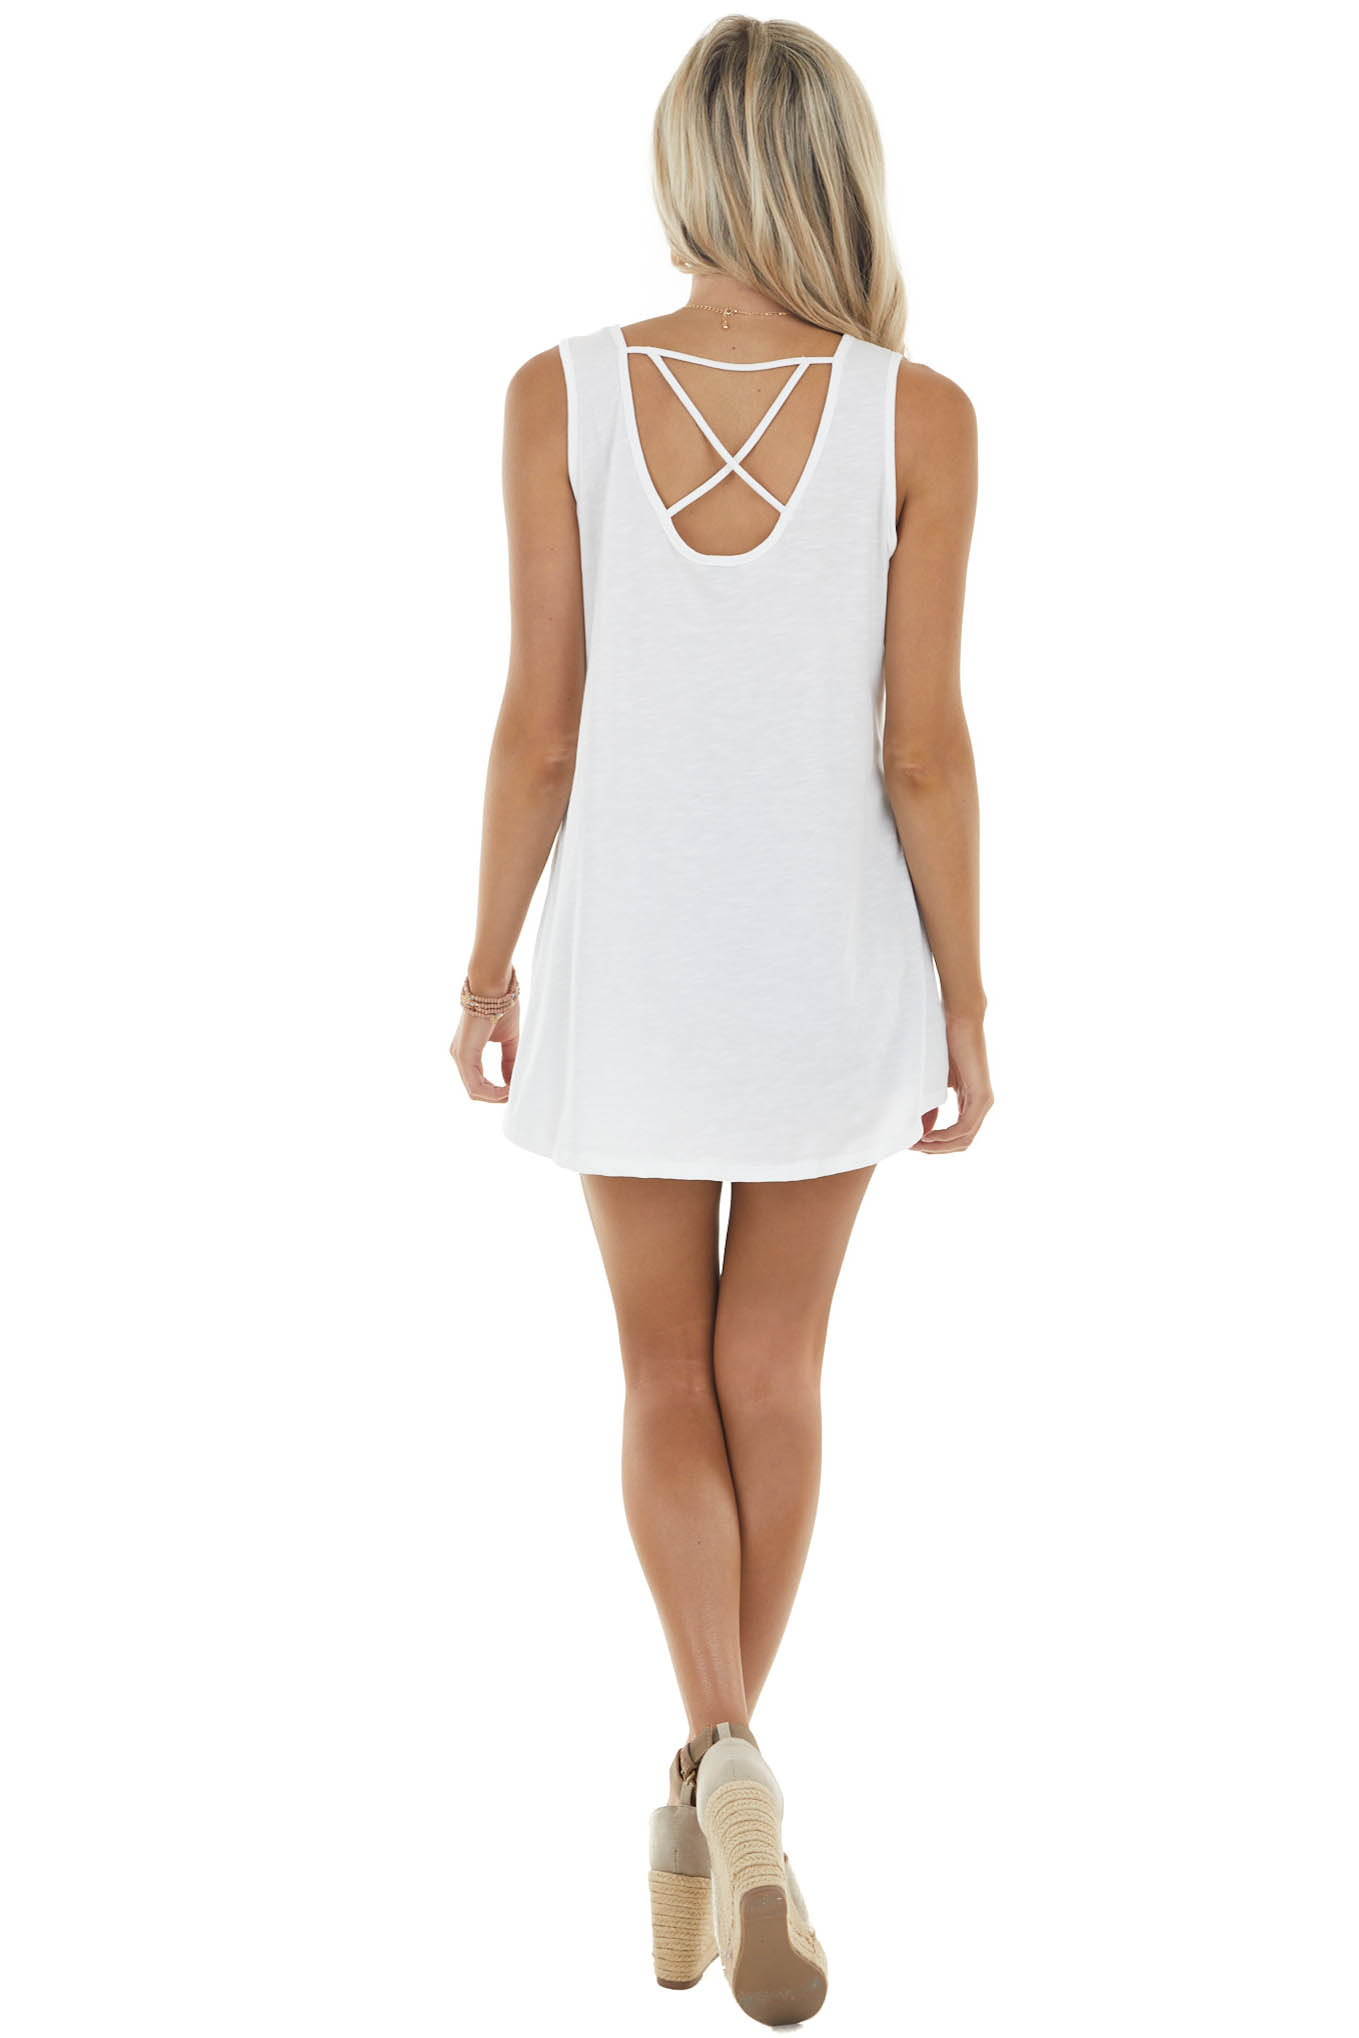 Heathered Ivory Sleeveless Knit Tank with Criss Cross Detail